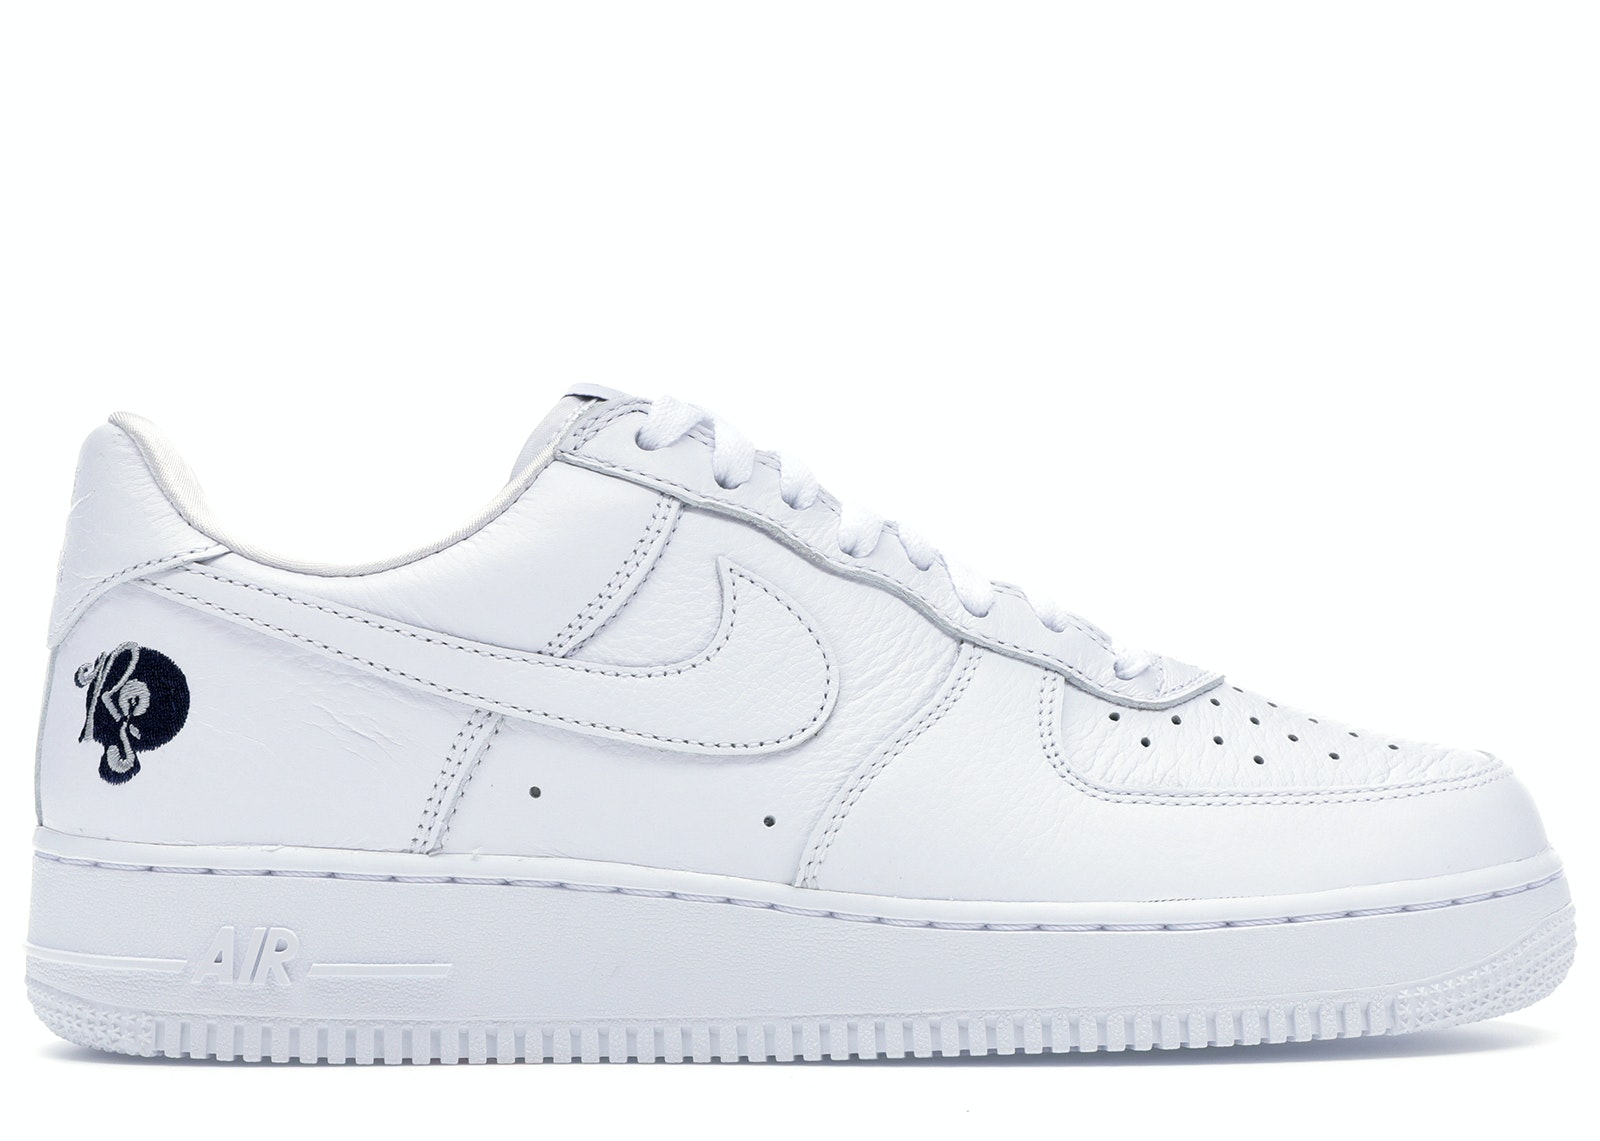 Air Force 1 Low Roc-A-Fella (AF100)